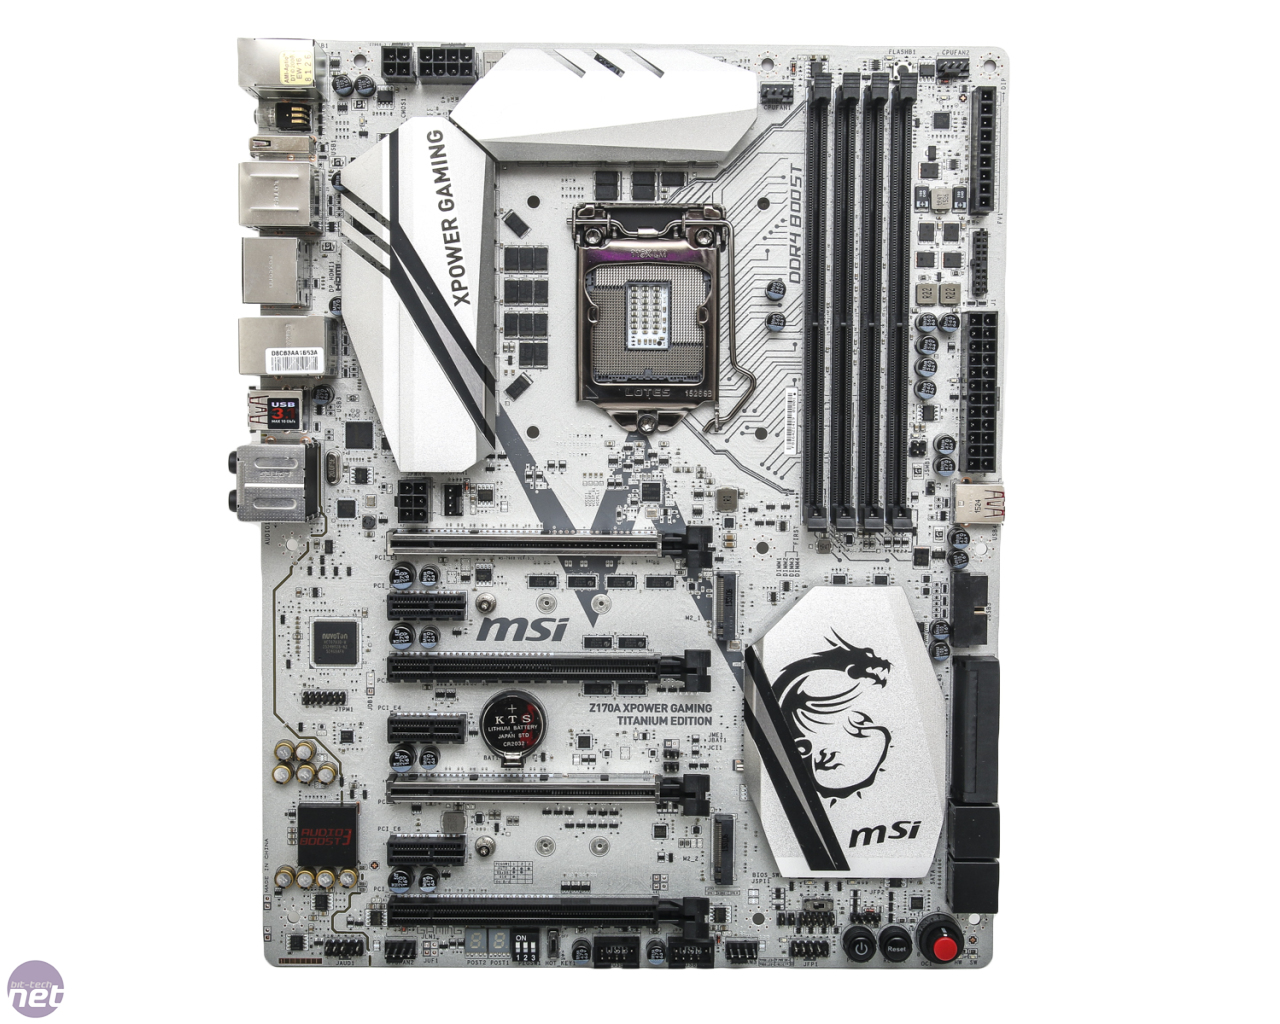 Info Harga Msi Z170a Mpower Gaming Titanium Lga 1151 Intel Z170 Hdmi Tang Ampere Fluke 376 With Ifex Xpower Edition Review Sata 6gb S